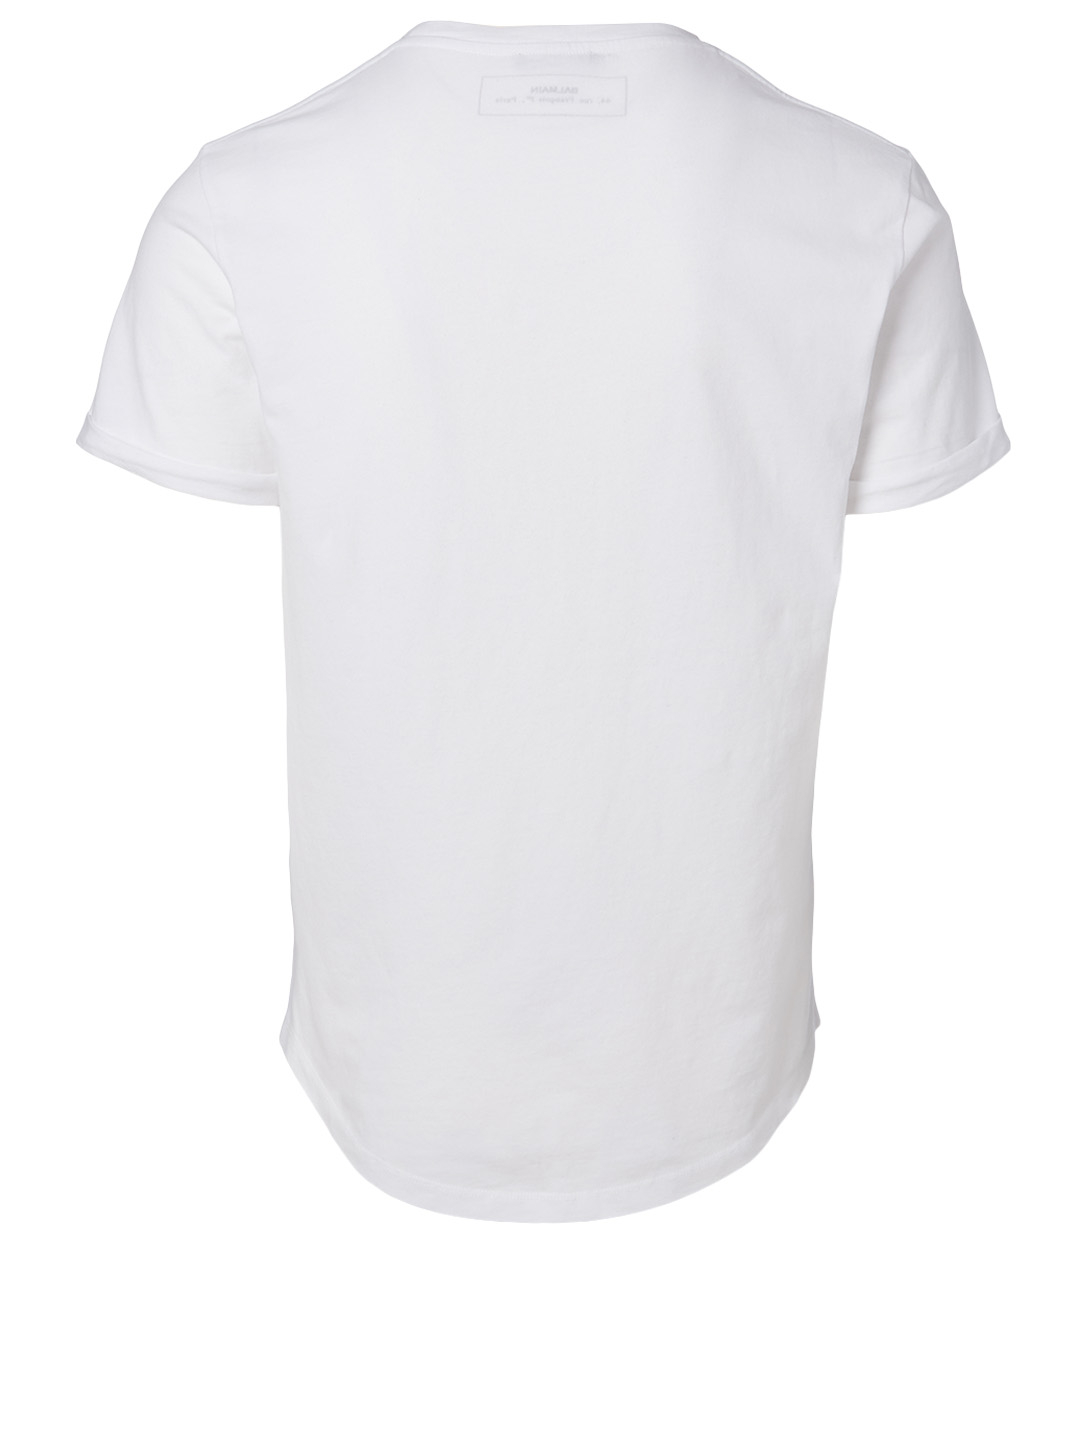 BALMAIN Cotton Medallion Logo T-Shirt Men's White